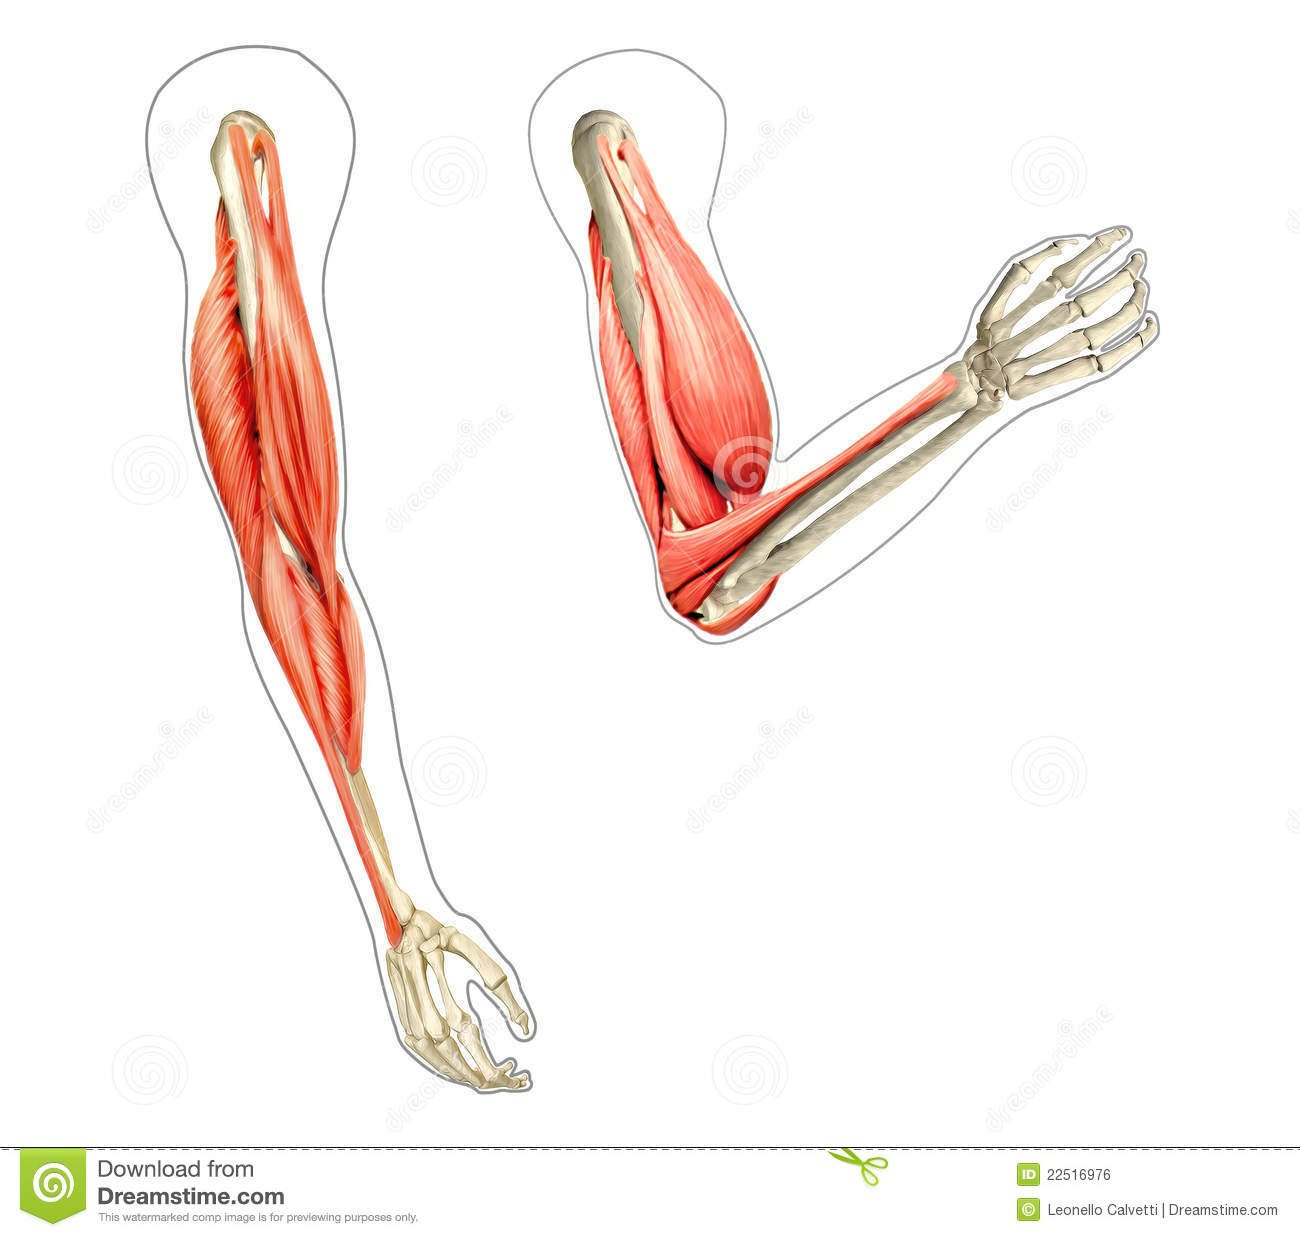 Unlabeled Muscle Diagram Worksheet Muscle Diagram Blank Human Body Anatomy